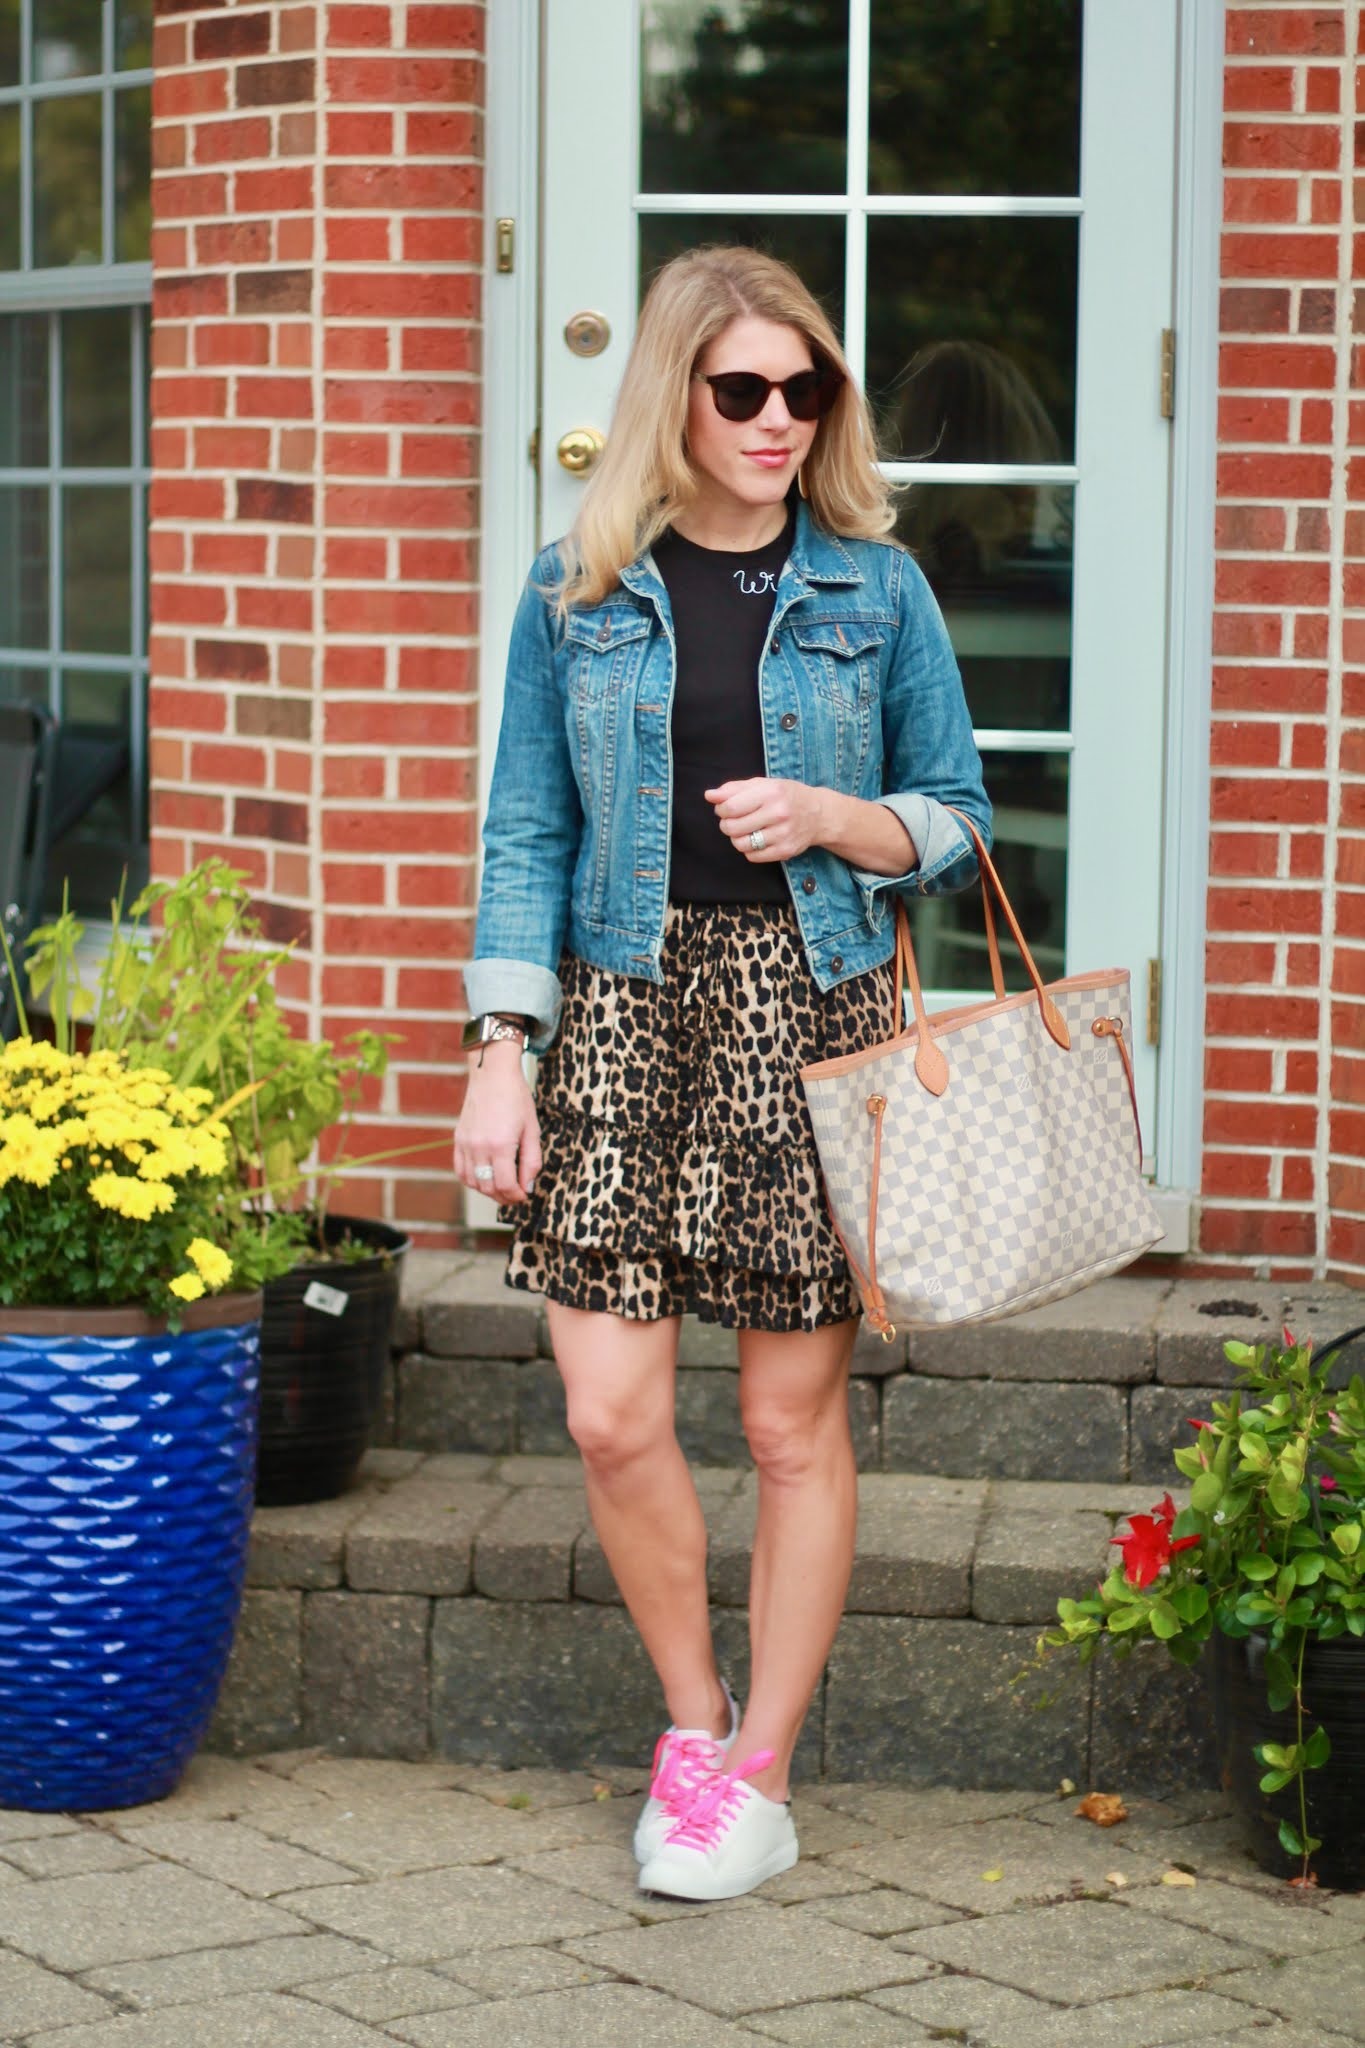 casual skirt outfit for fall, leopard skirt for fall, fall outfit with skirt, skirt and sneakers, leopard skirt, denim jacket, wine please tee